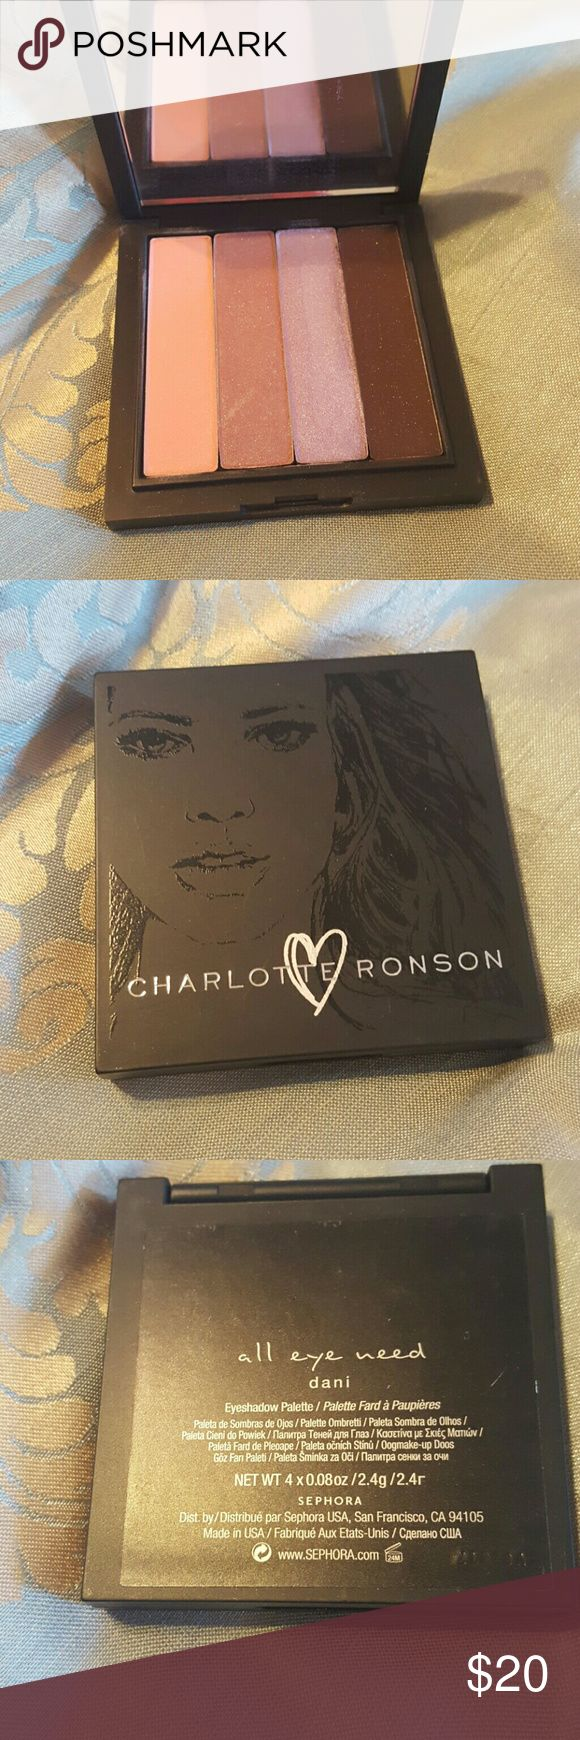 Charlotte Ronson All Eye Need Eyeshadow in Dani This brand has been discontinued at Sephora and rare. This palette has a mirror. These 4 colors all have shimmer and the dark purple has glitter. This item doesn't come with a box. Charlotte Ronson Makeup Eyeshadow